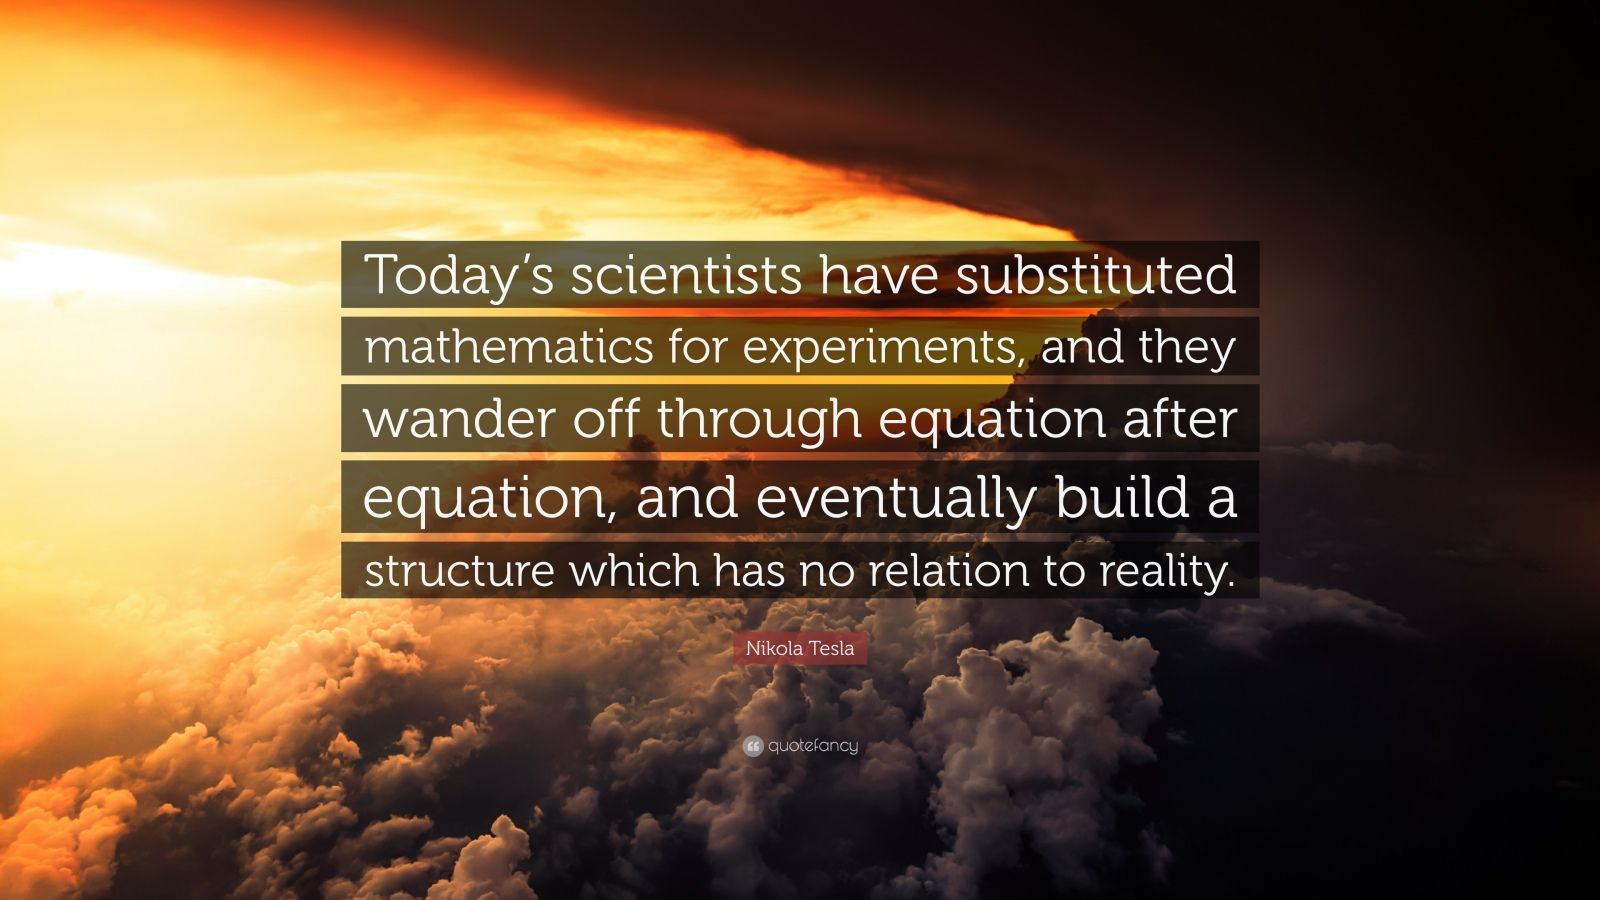 """Nikola Tesla Quote: """"Today's scientists have substituted mathematics for experiments, and they wander off through equation after equation, and eventually build a structure which has no relation to reality."""""""